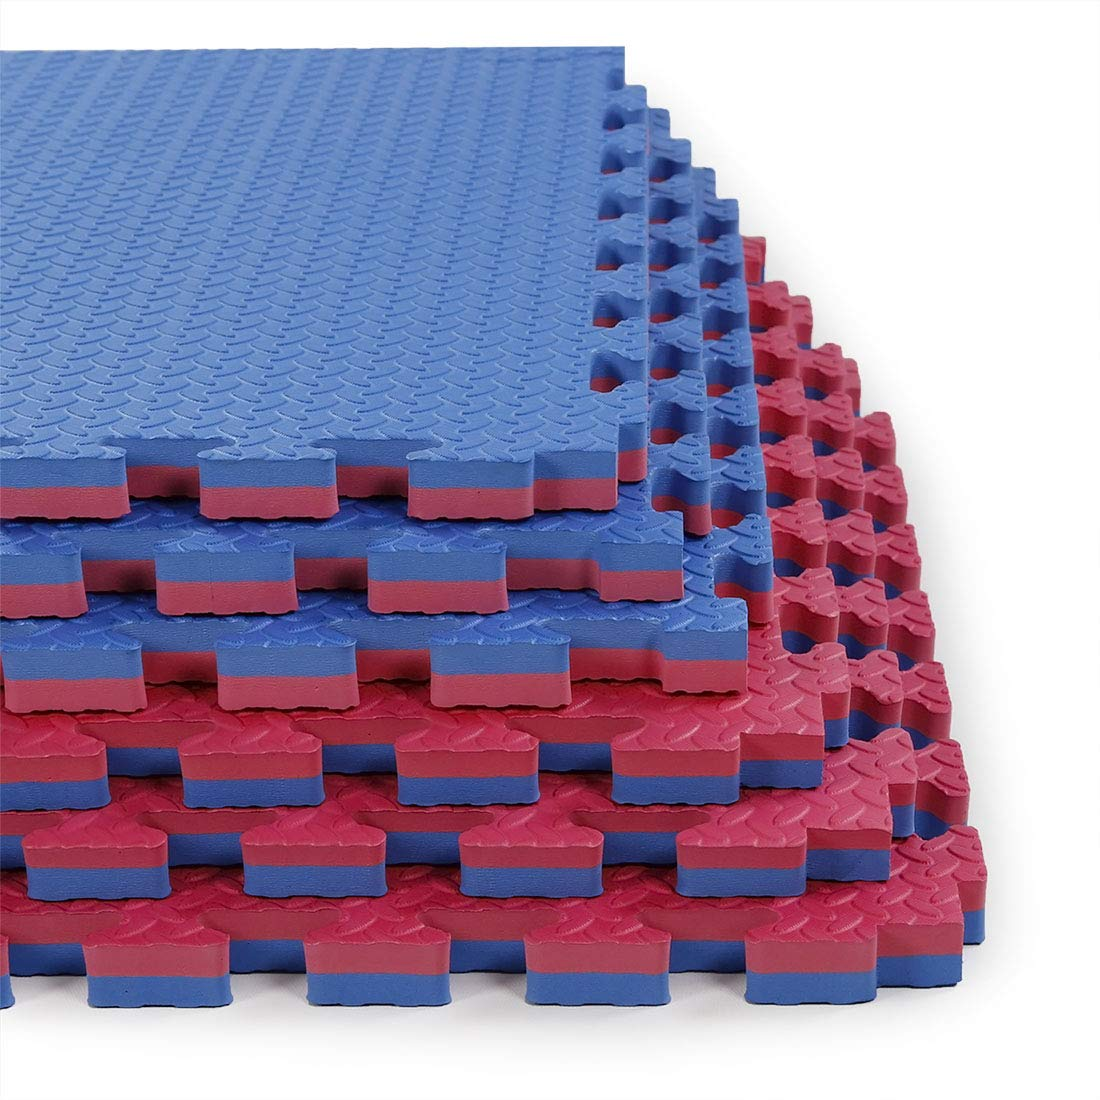 Clevr Reversible 1'' Thick Interlocking EVA Gym Foam Floor Mat Tiles (24'' x 24''), Protective Flooring for Gym Equipment, 1 Year Limited Warranty, Steel Pattern,12 pcs, 48 sqft, Blue/Red by Clevr